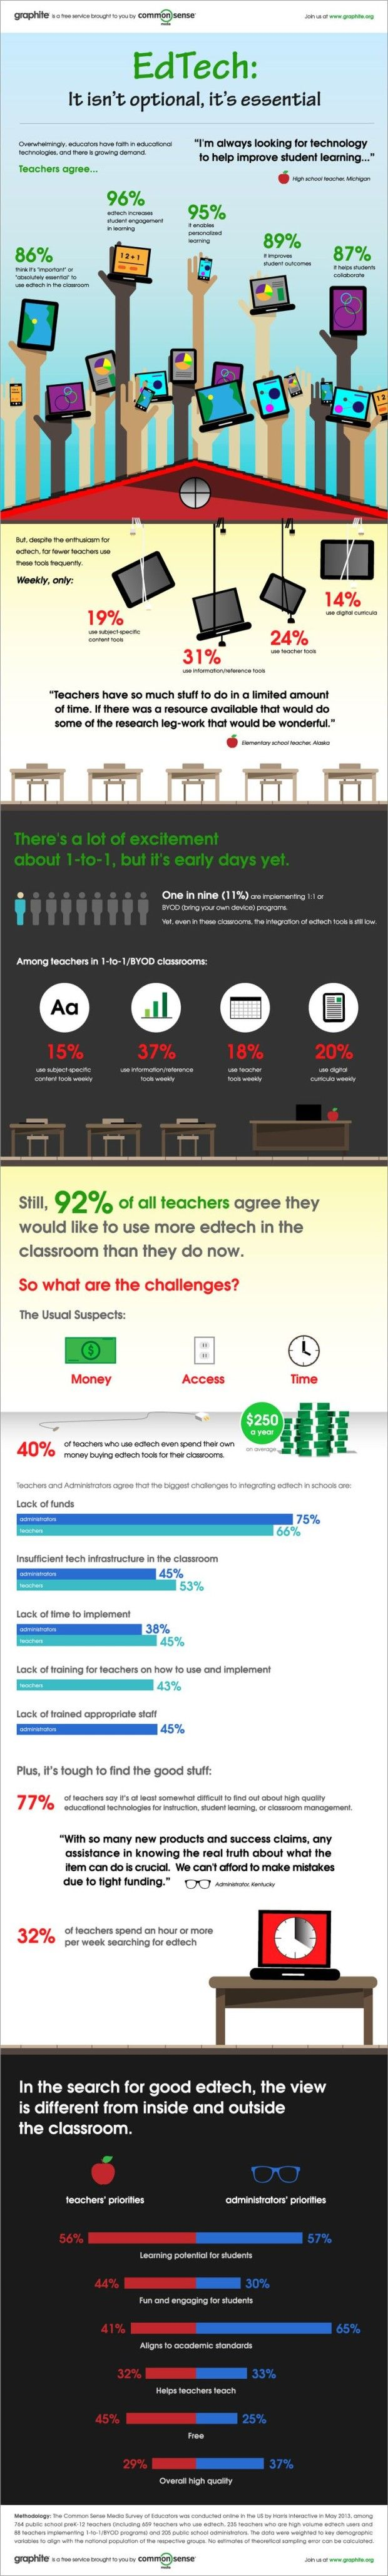 EdTech: It isn't optional, it's essential | Why Teachers Should Use Education Technology | #infographics repinned by @Piktochart